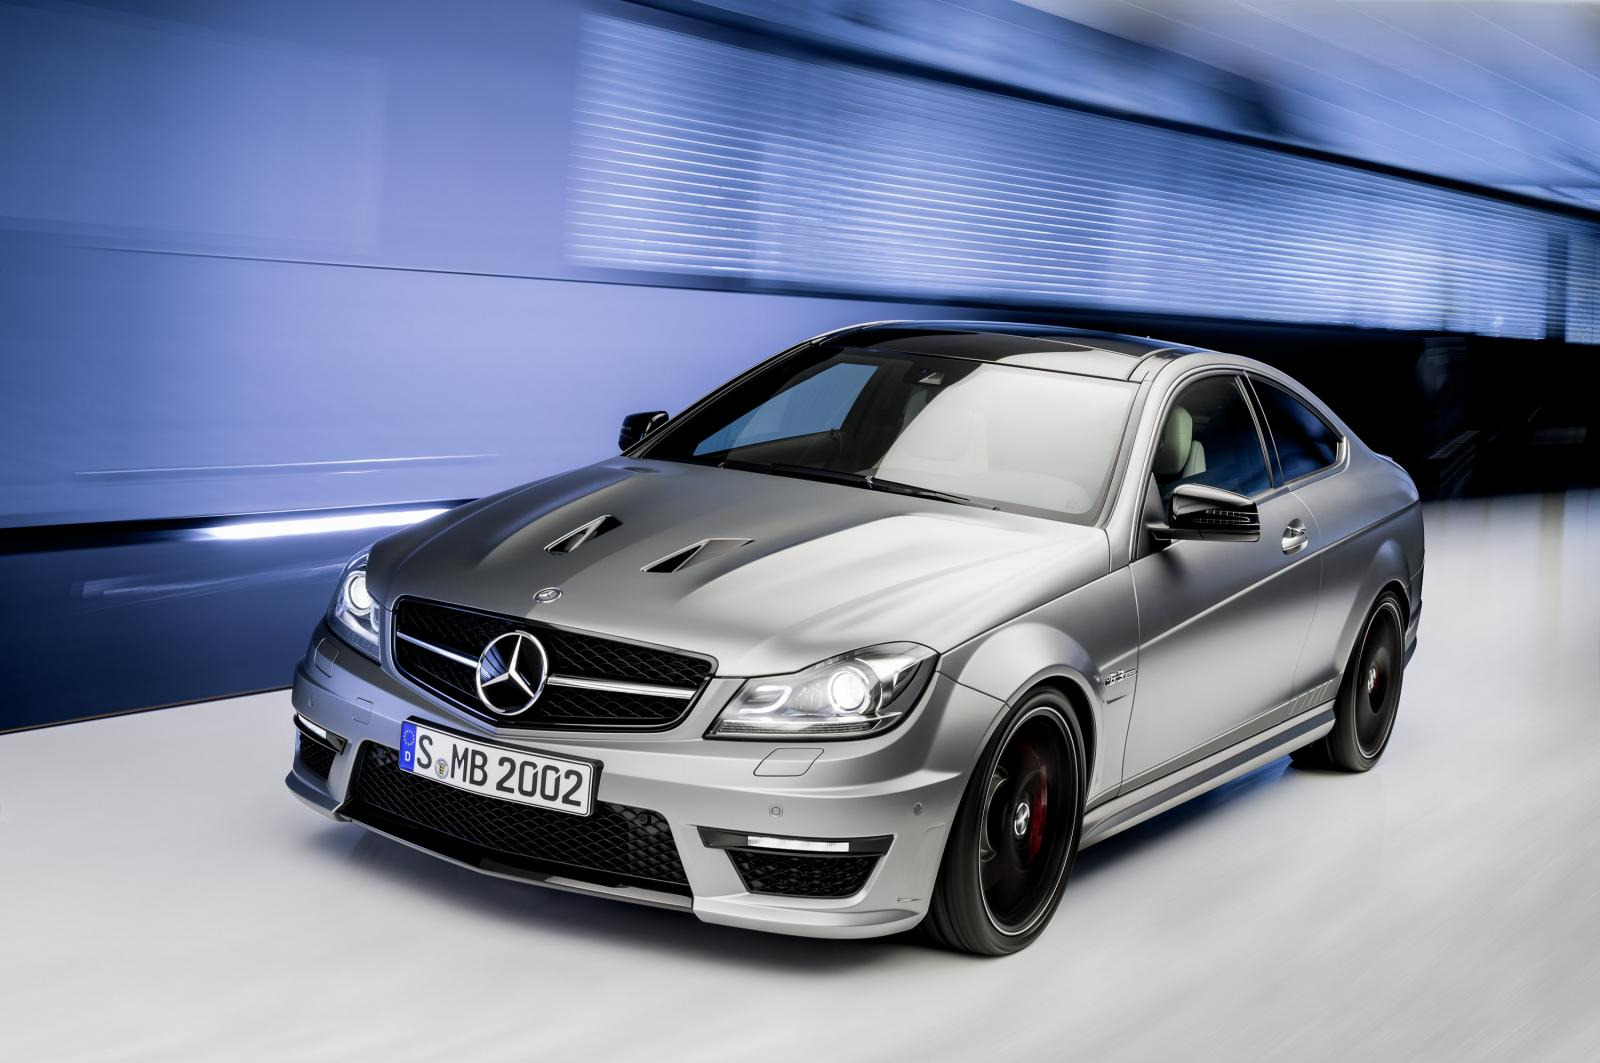 Mercedes C 63 AMG Edition 507 Goes On Sale - autoevolution